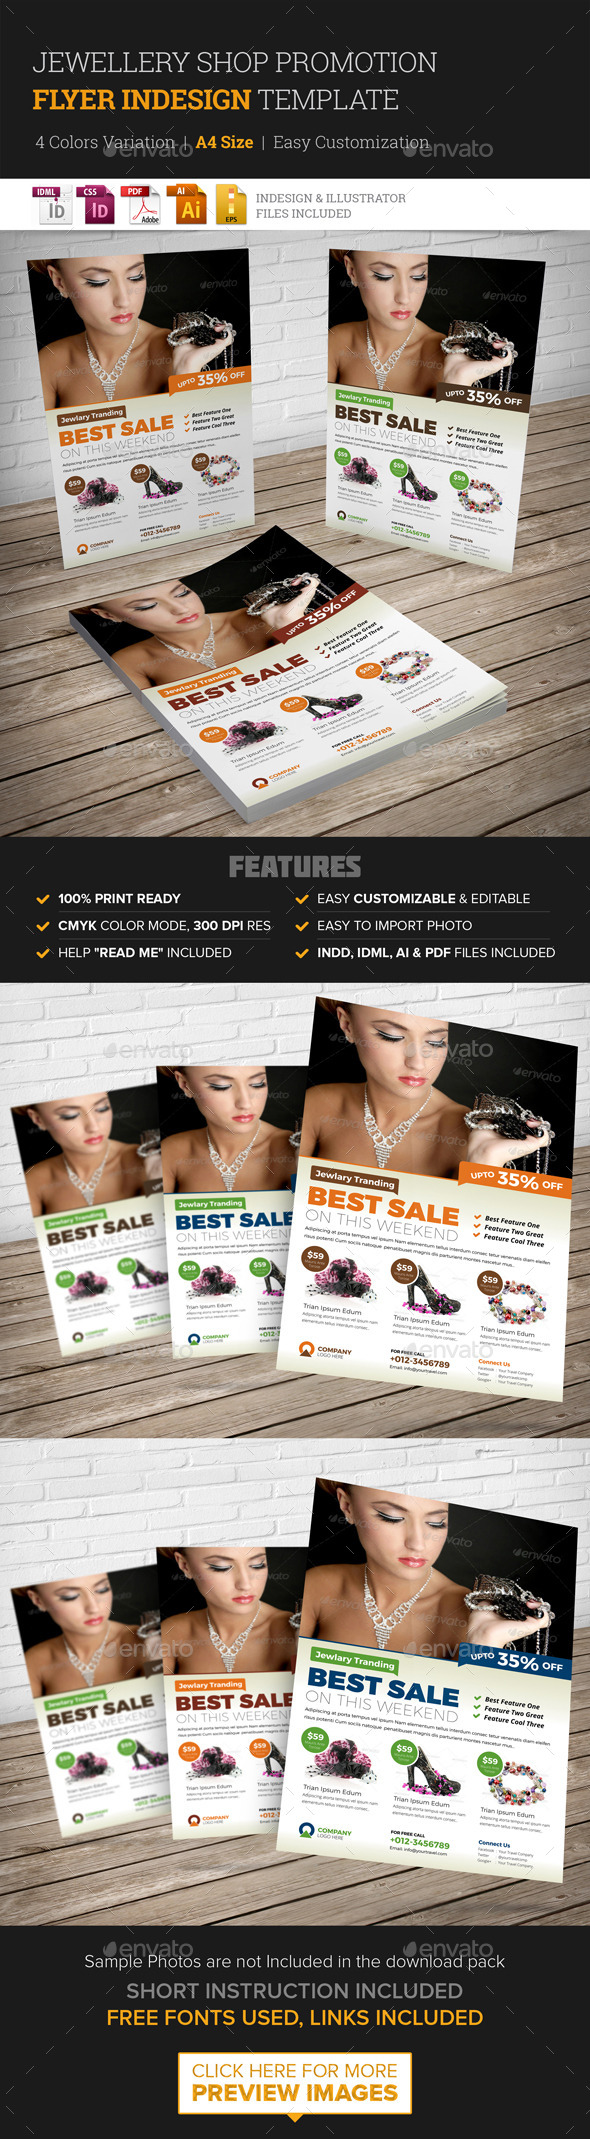 Jewellery Shop Promotion Flyer Indesign Template  - Corporate Flyers